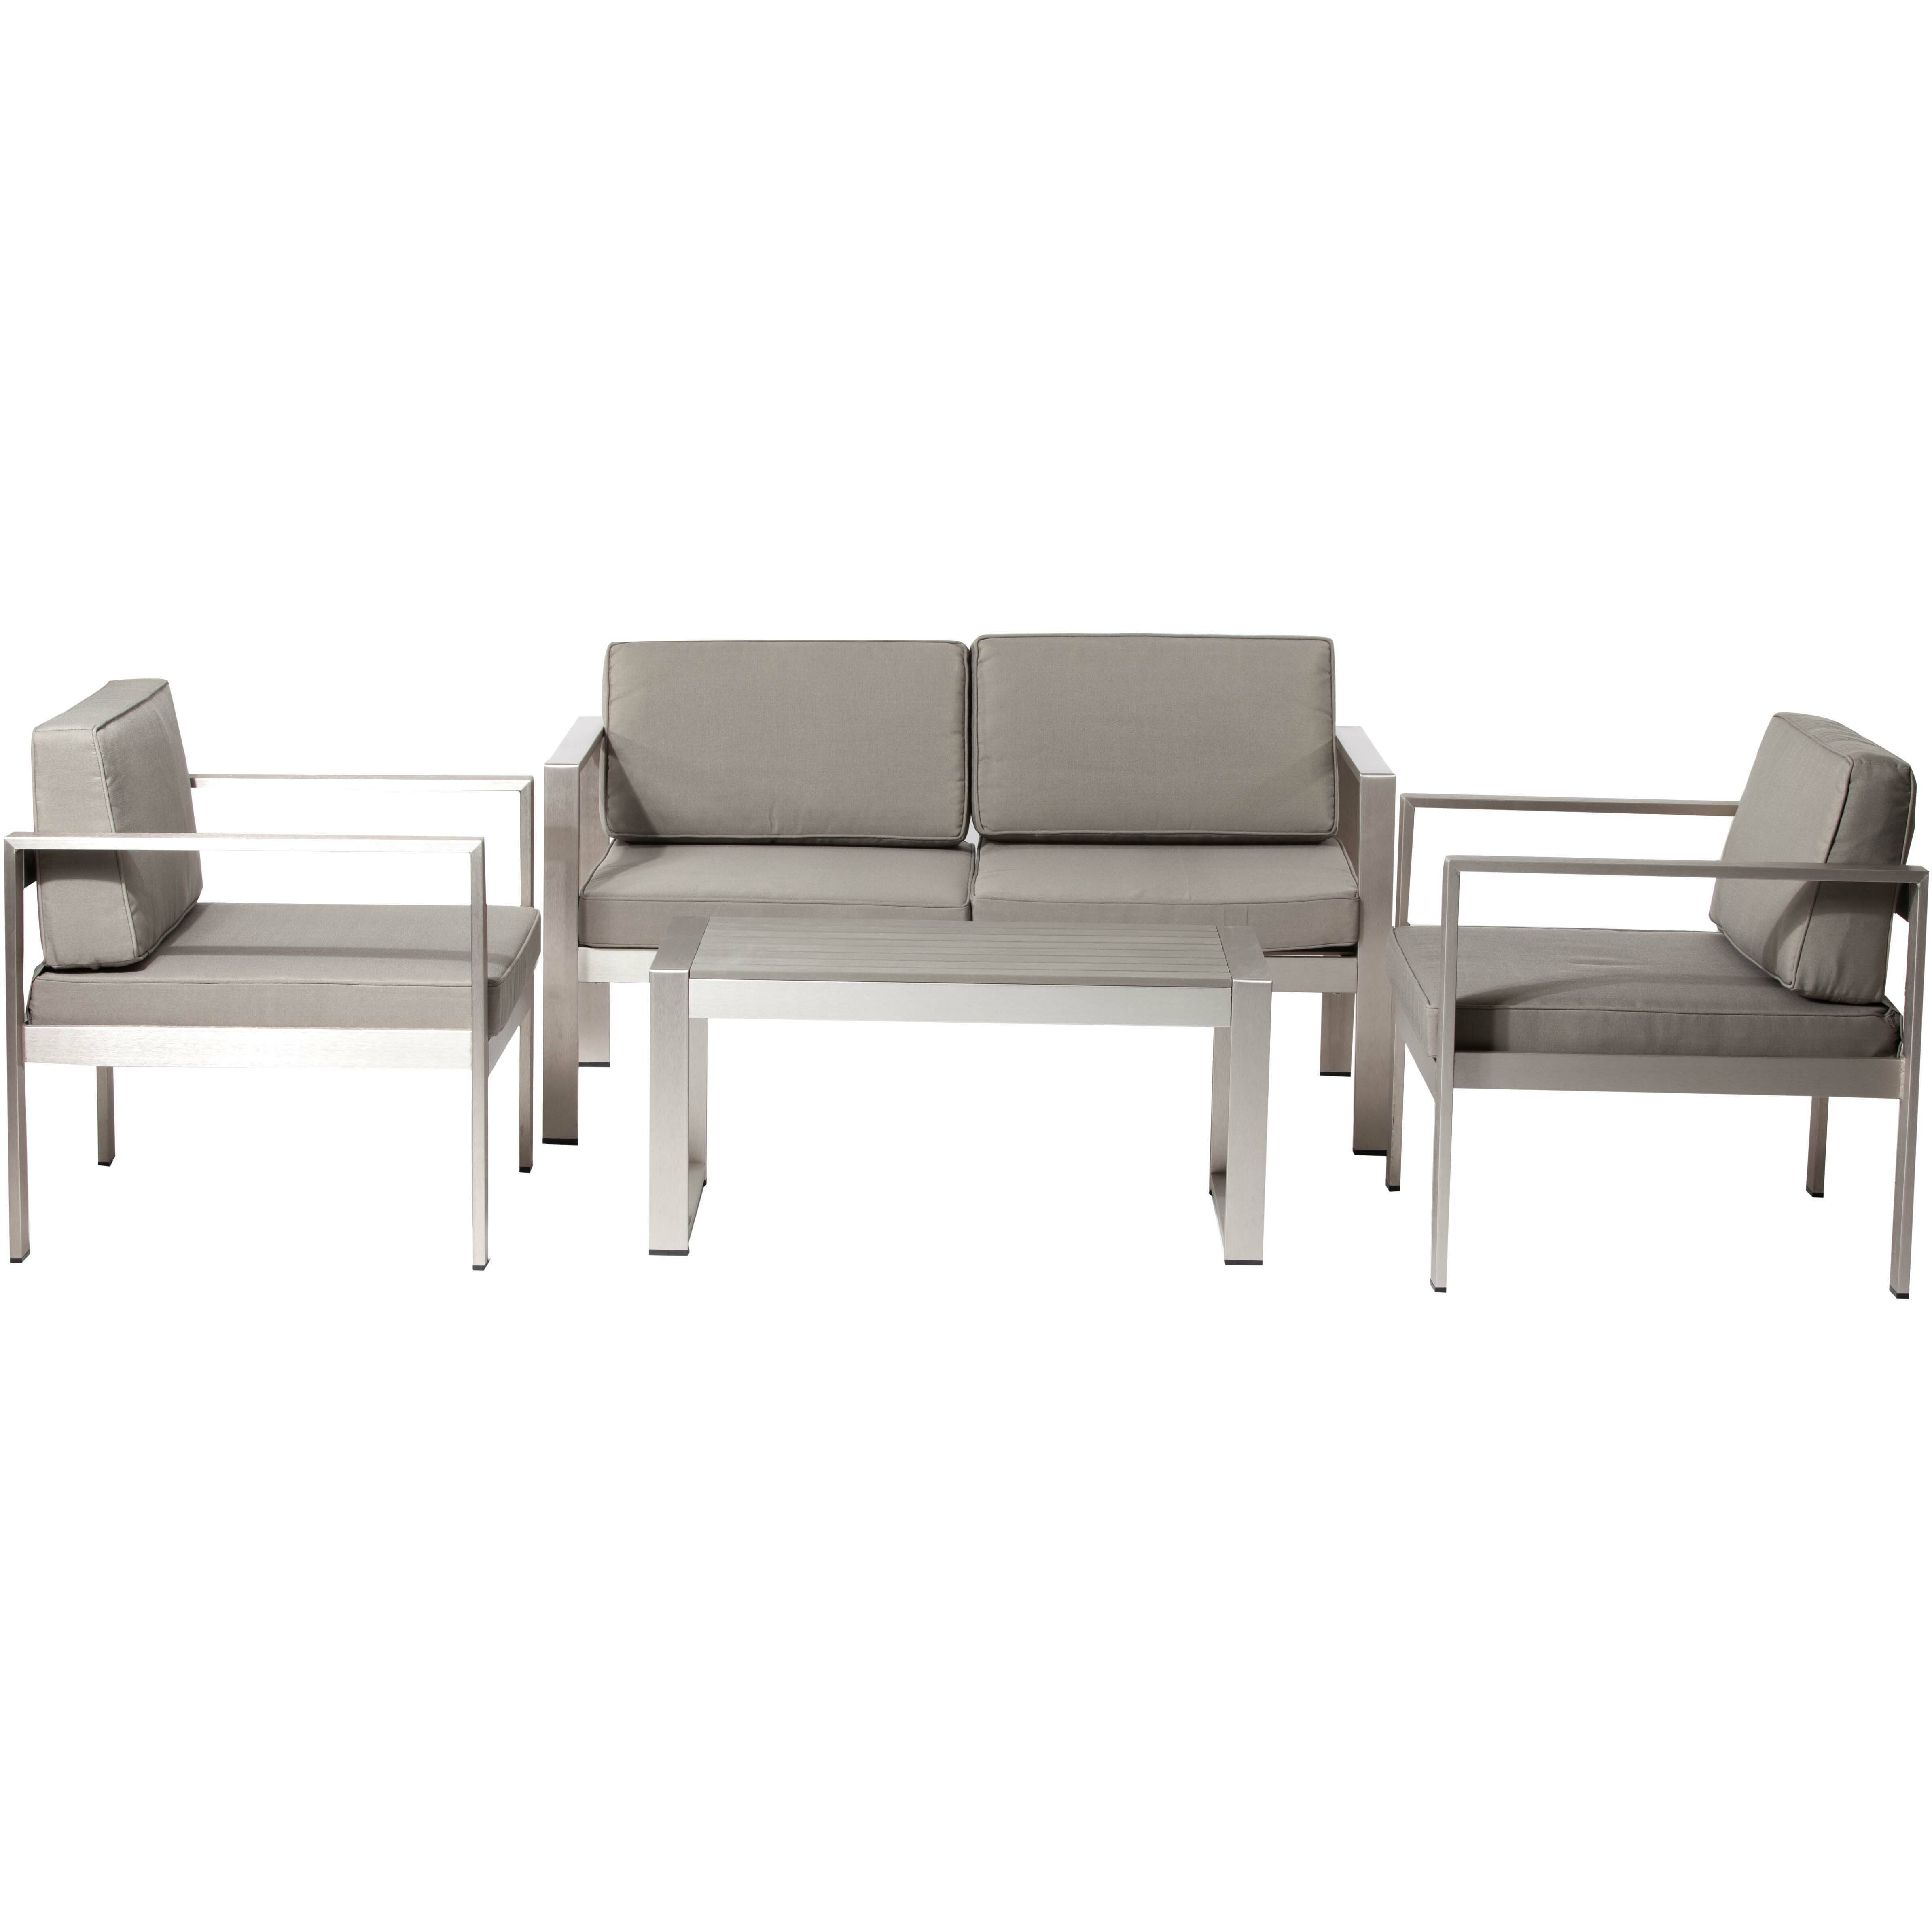 Pangea Home 4 Piece Karen Lounge Seating Group with